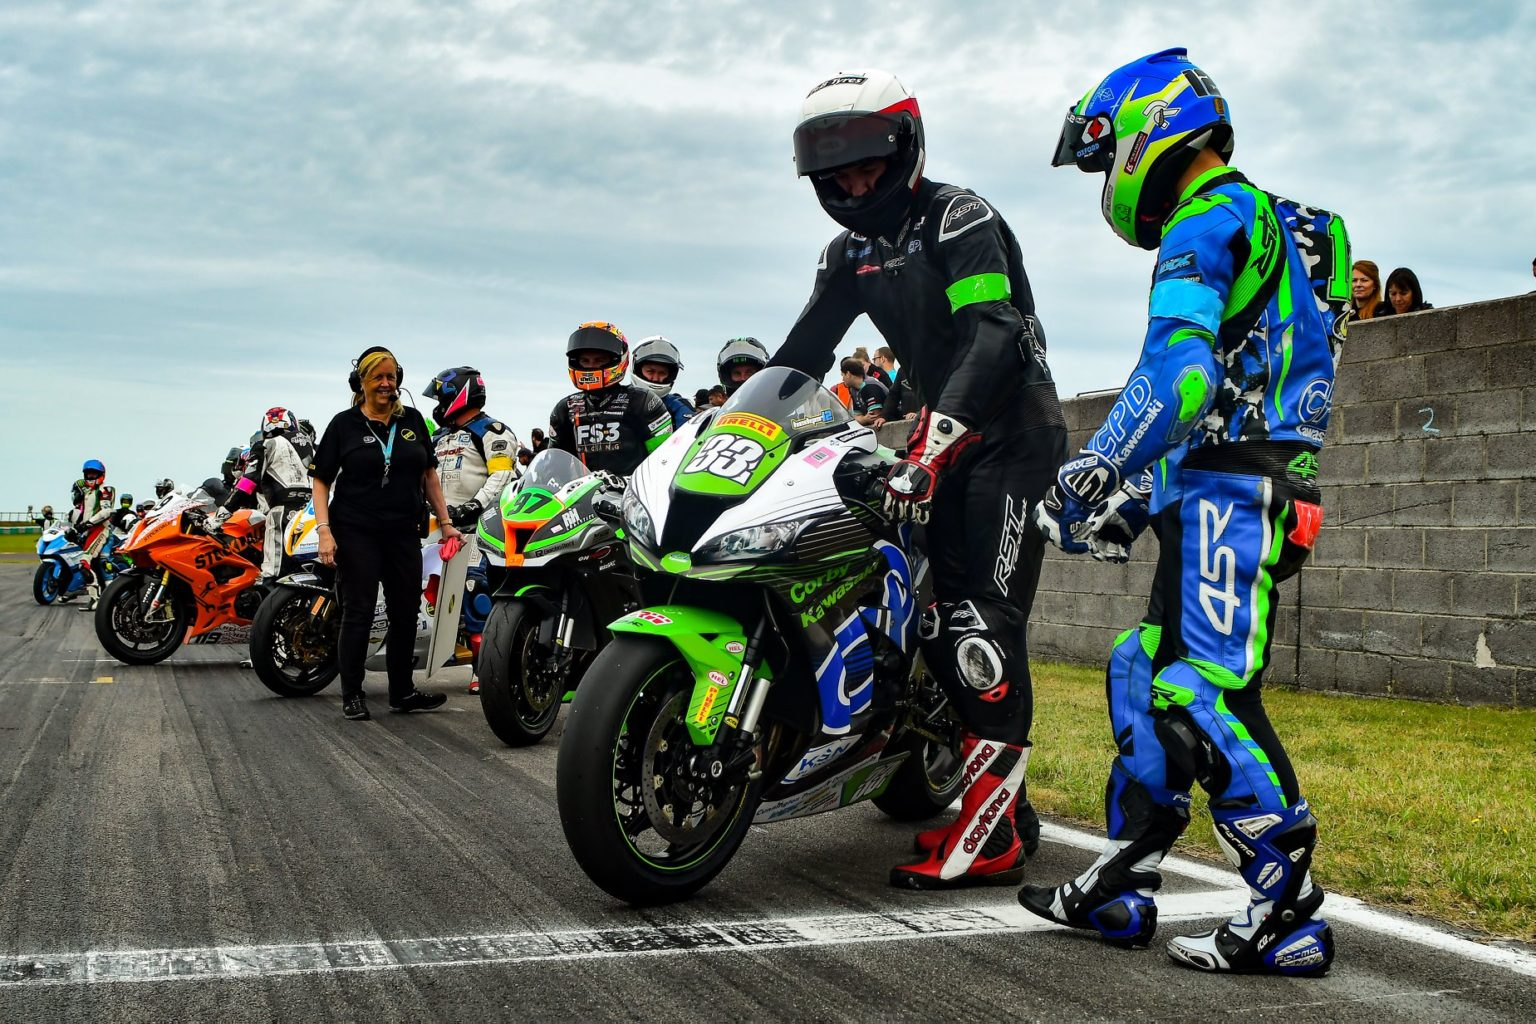 BSB paddock regulars filled the front spots as action got underway...